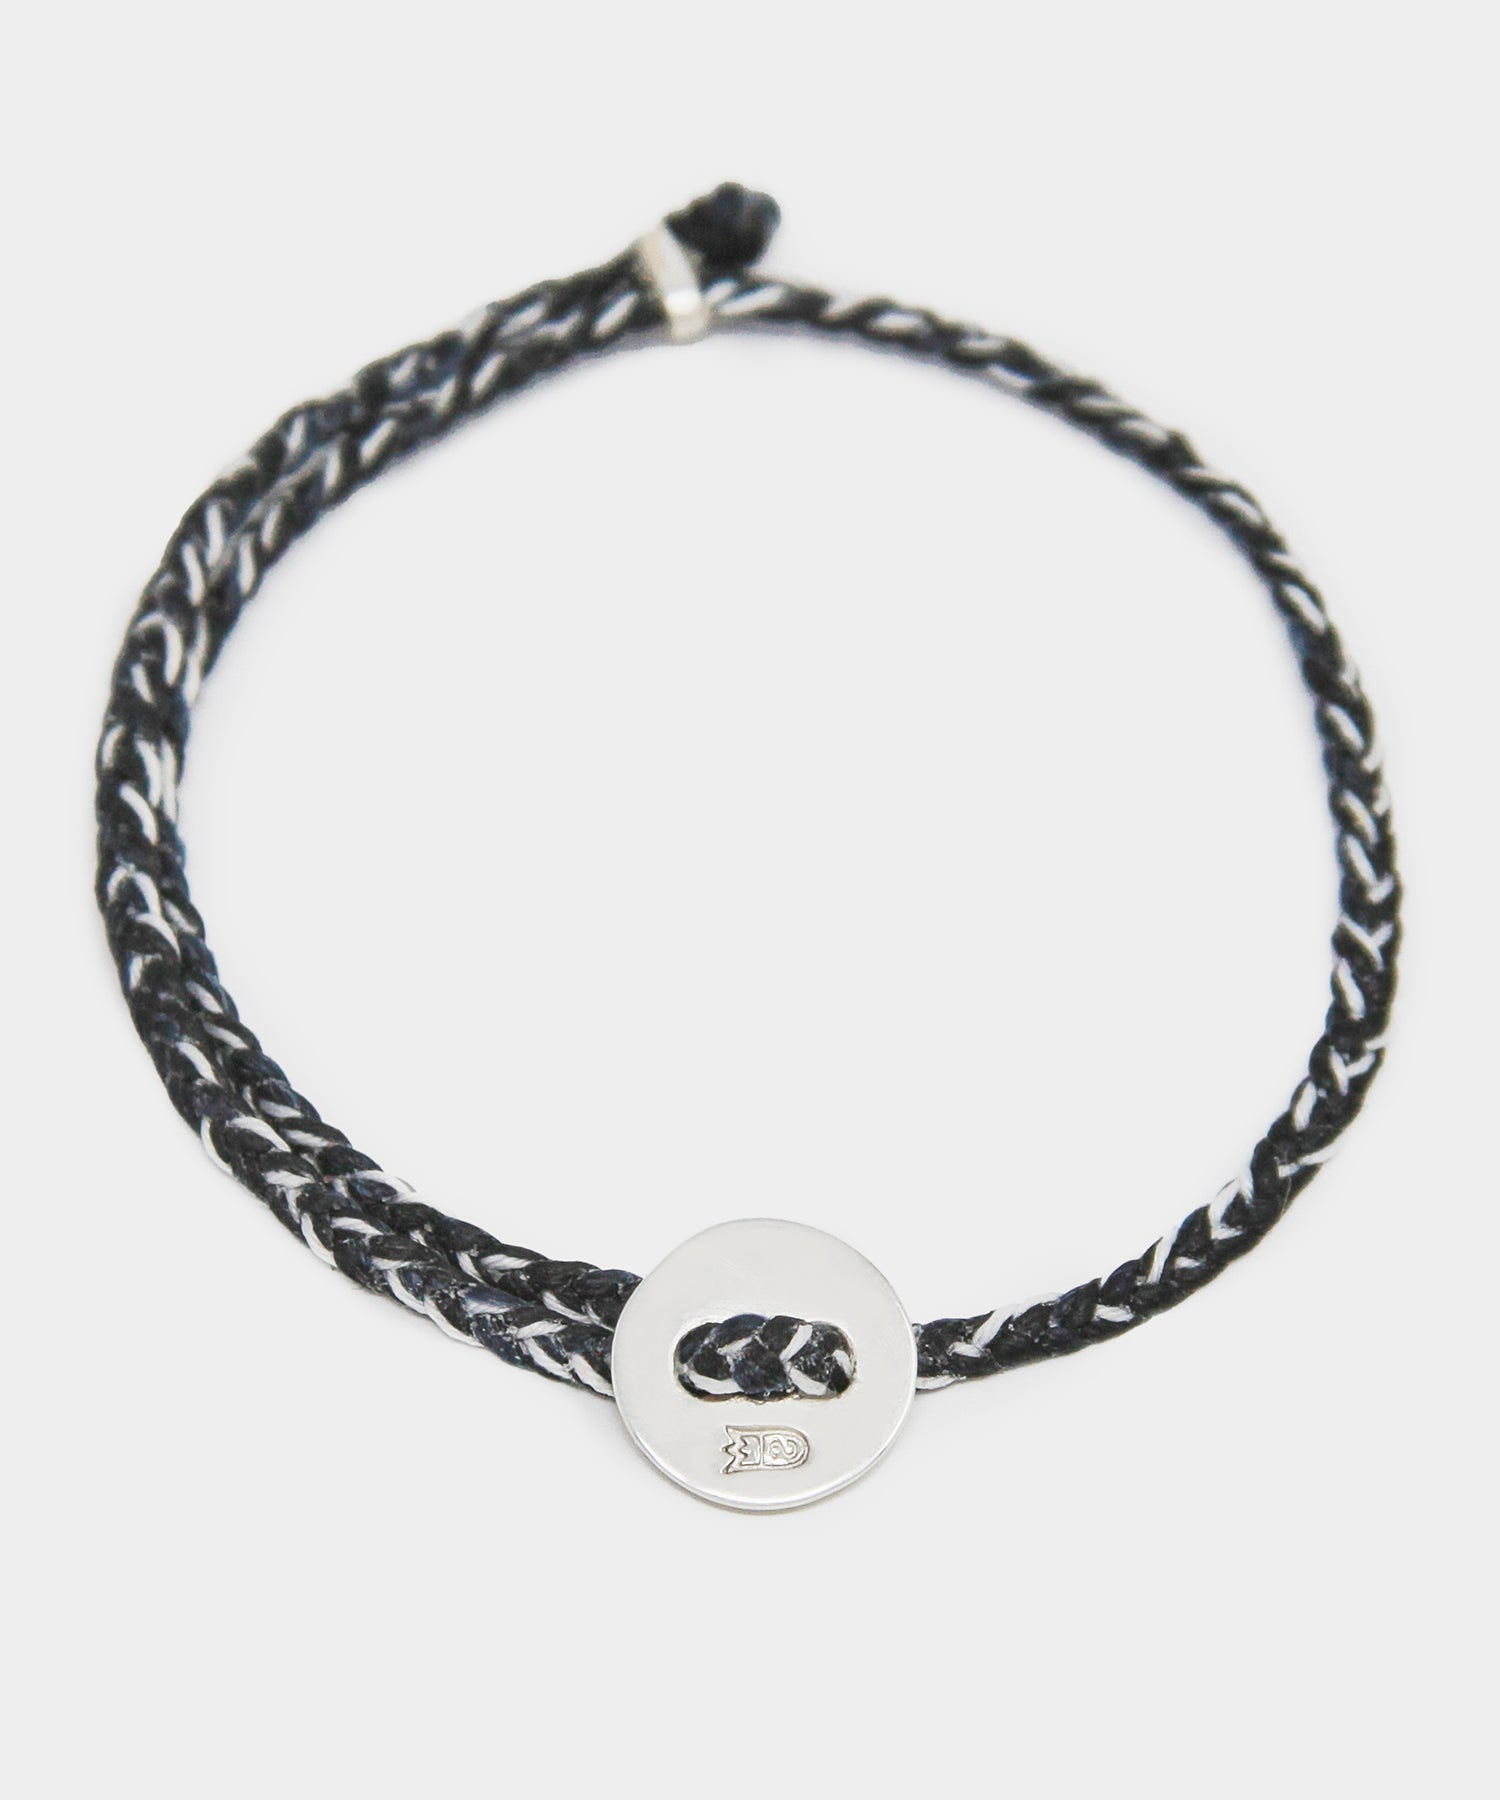 Scosha Signature 4MM Bracelet in Black and Silver